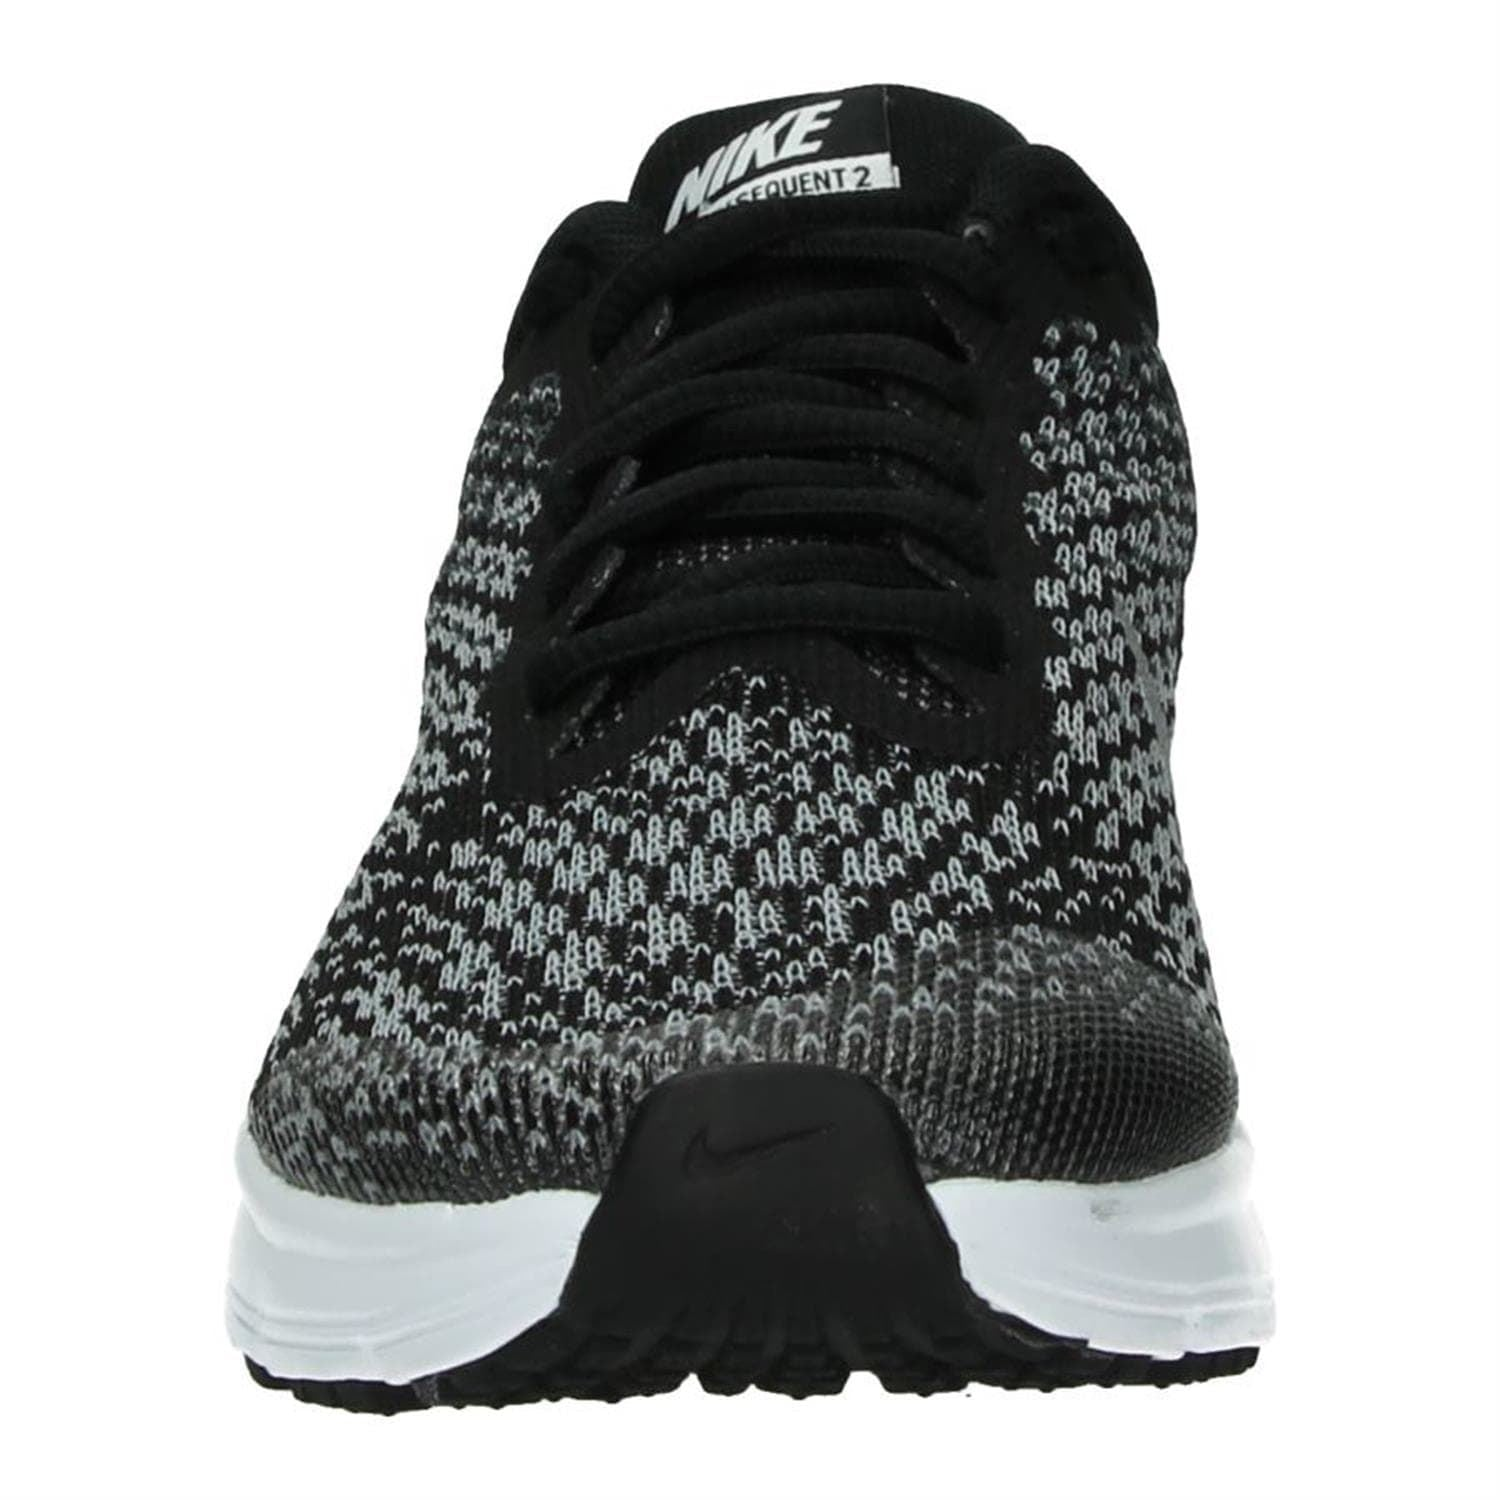 new products 966b0 9a0f1 Nike Air Max Sequent 2 Juniors GS 869993 001 Black Silver